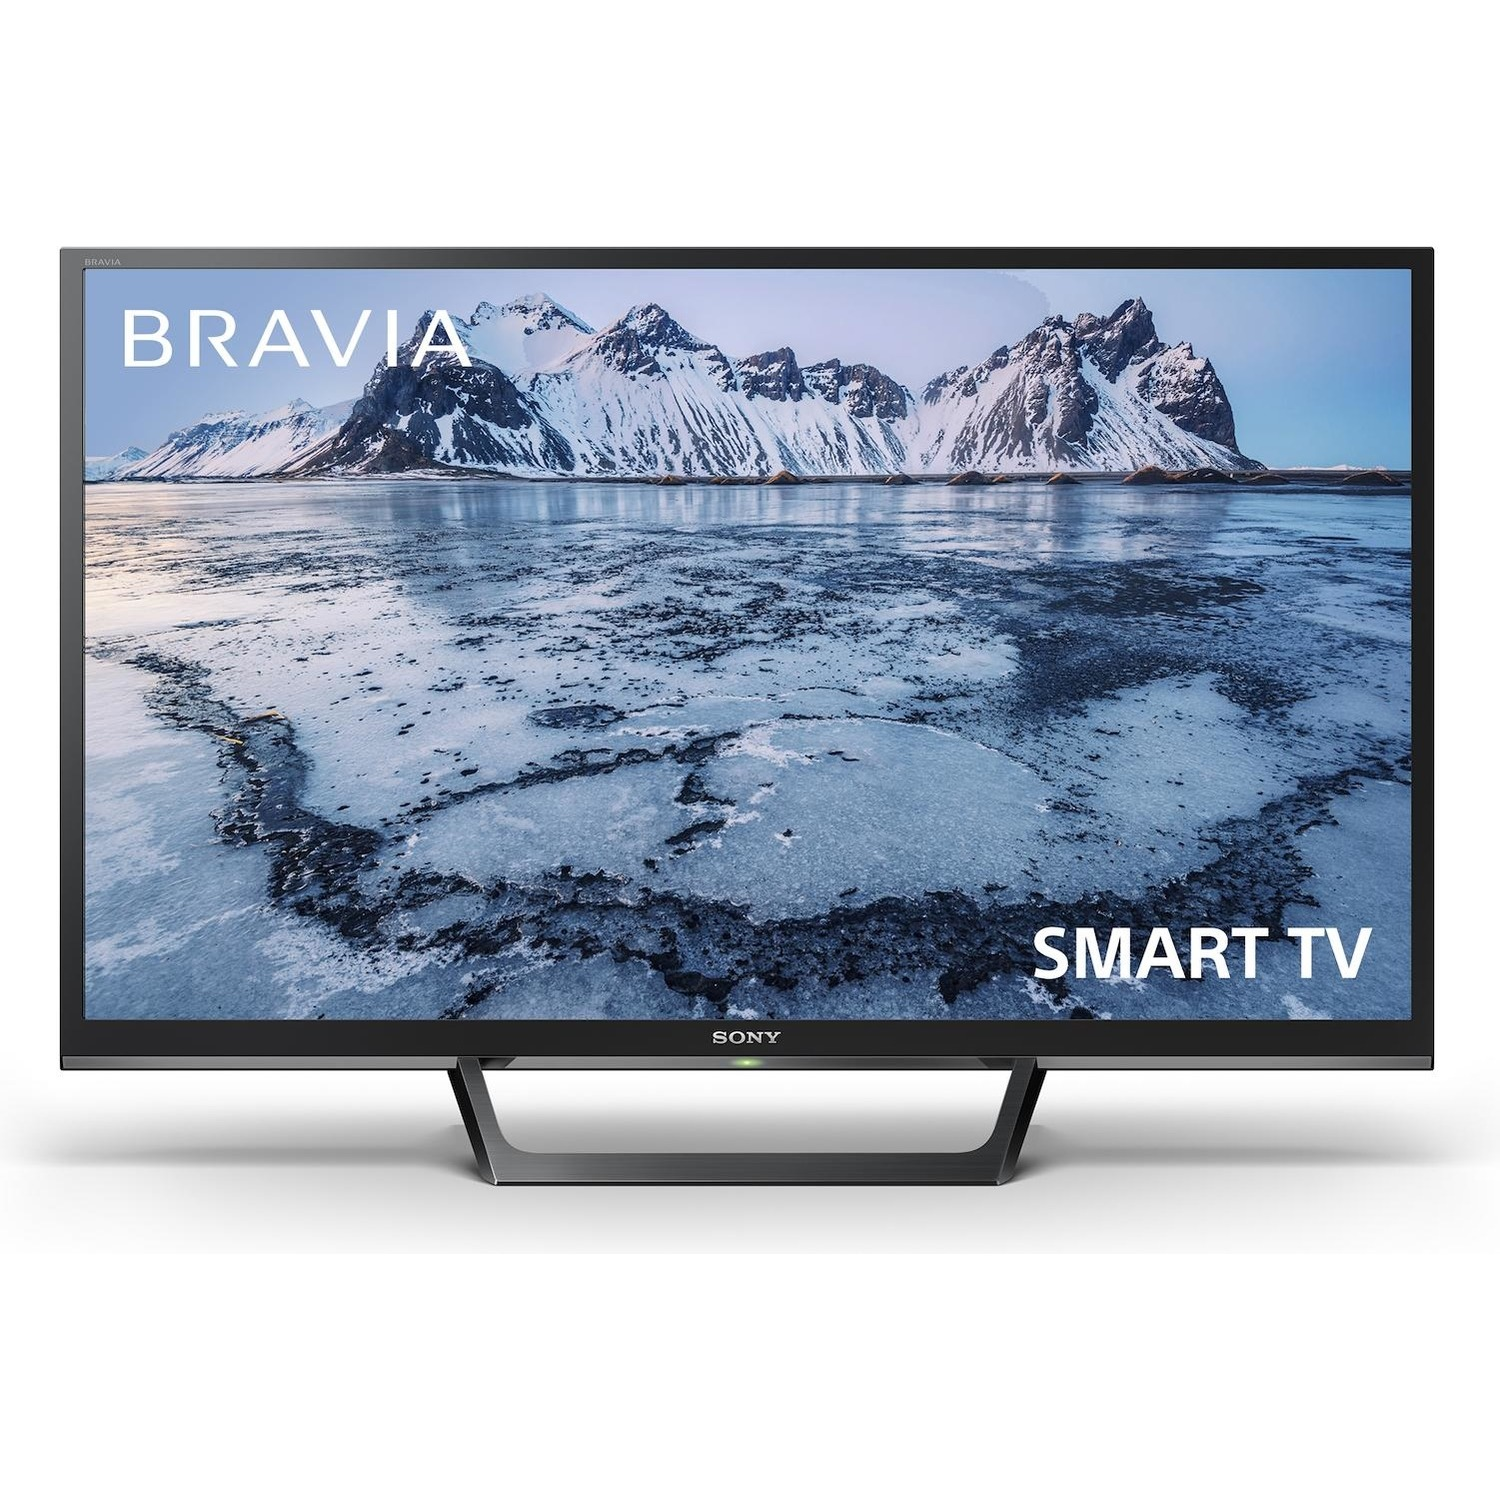 Immagine per TV LED Smart Sony 32WE615B da DIMOStore